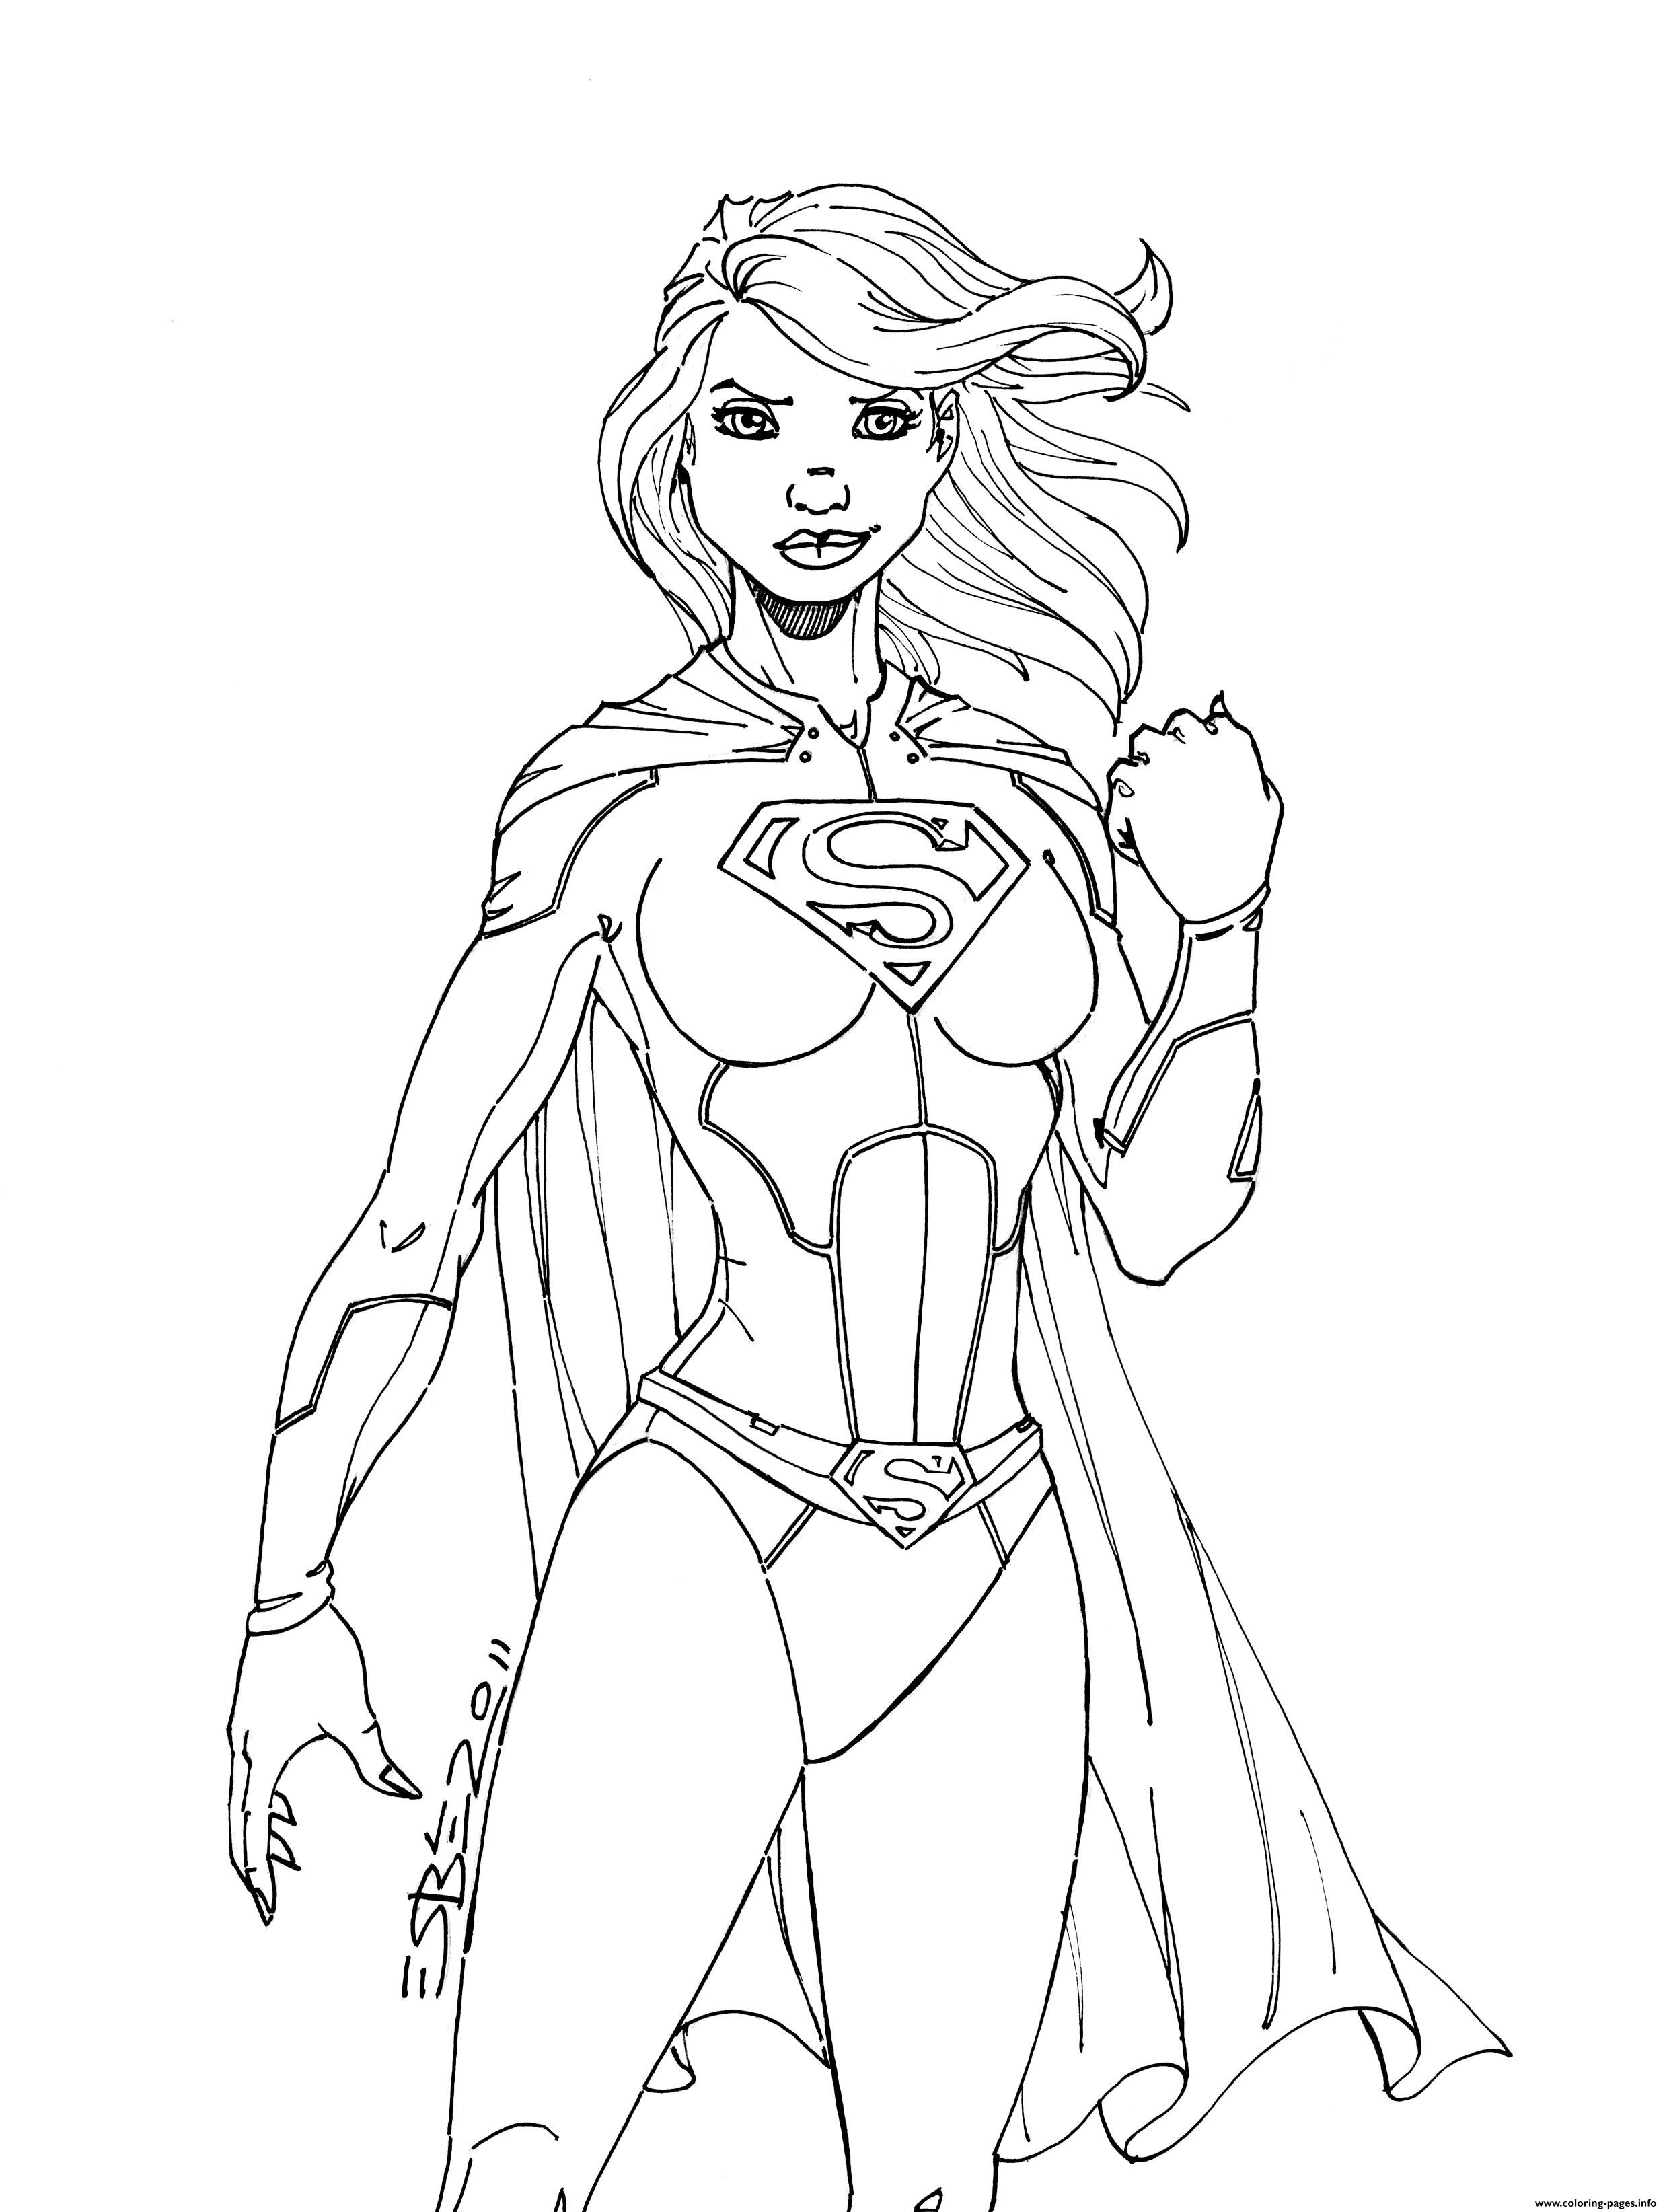 Print Superwoman Power Girl Coloring Pages Superhero Coloring